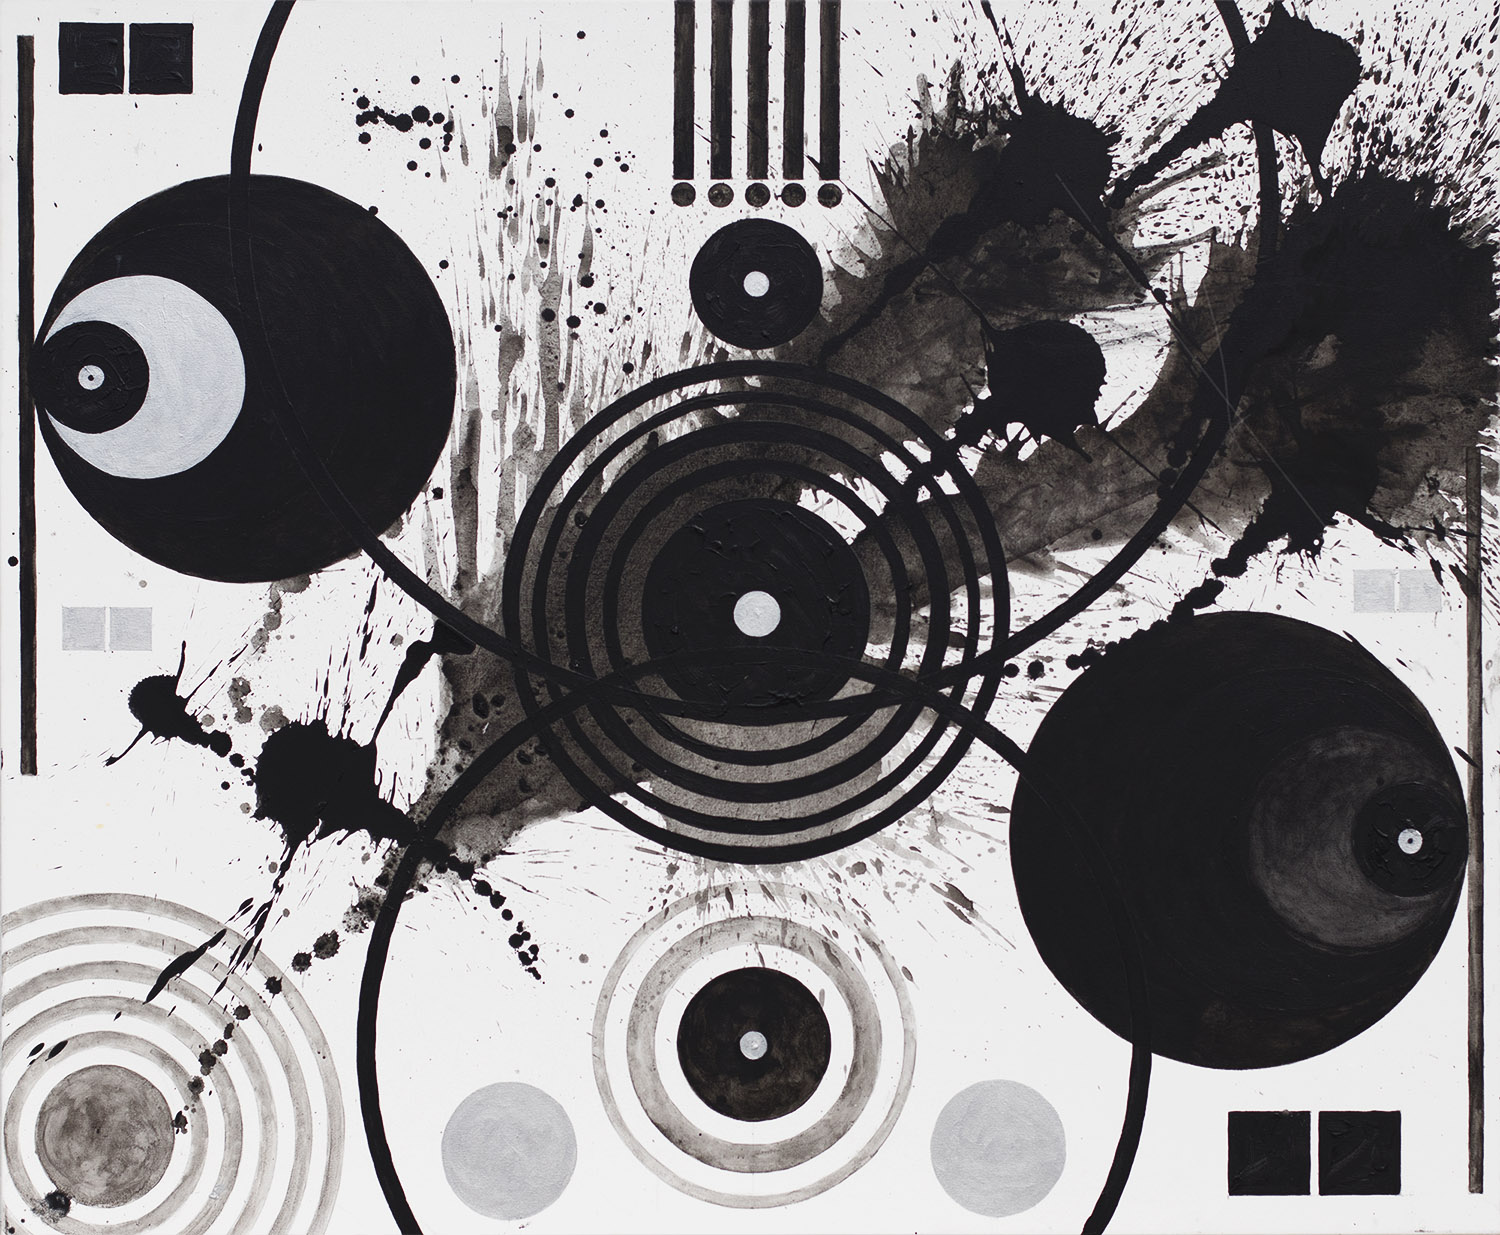 Black and White (Splashes, Symbols & Marks), 2018